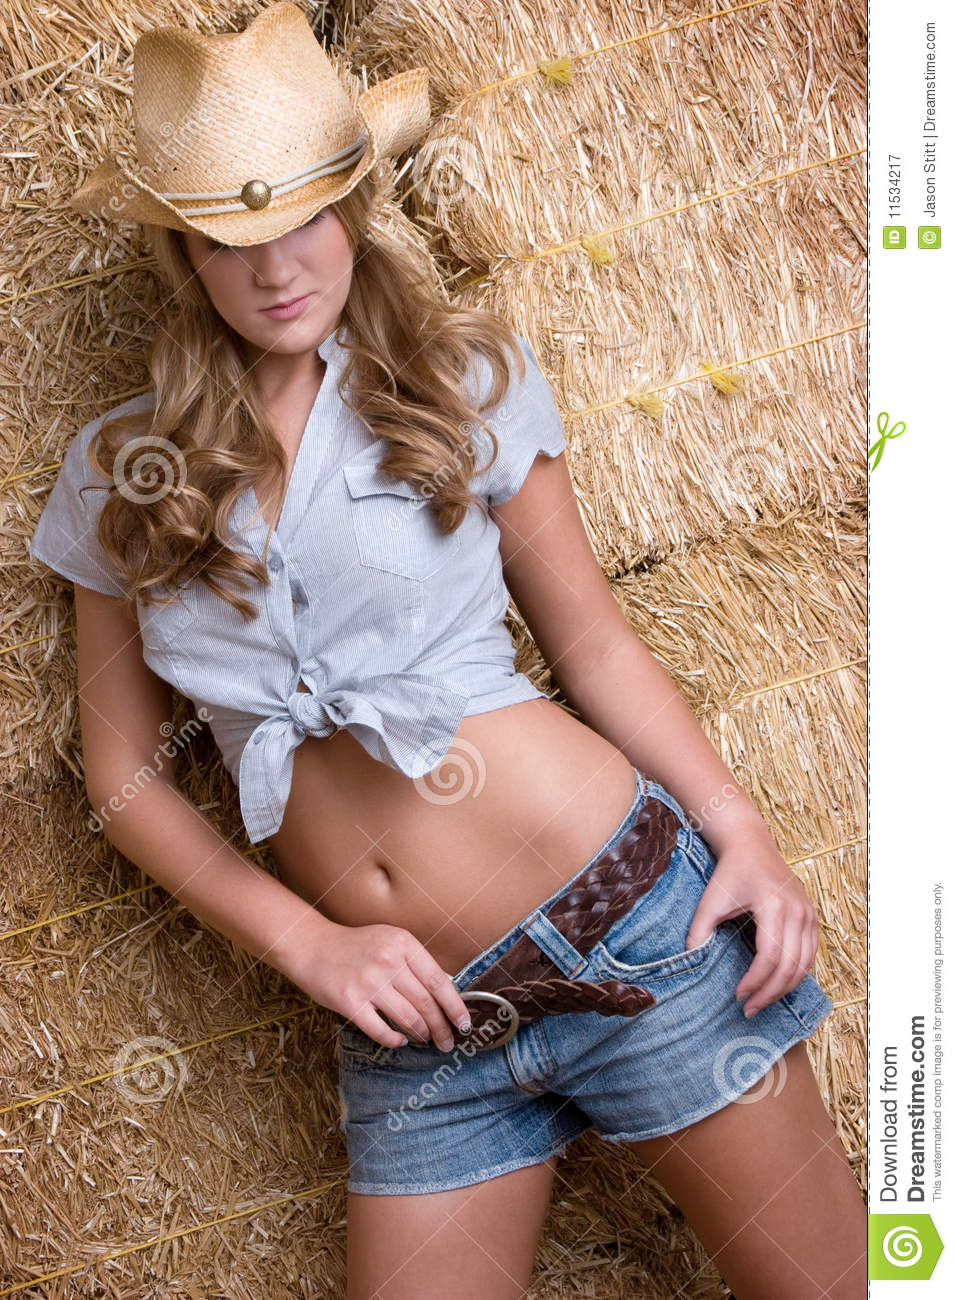 Sexy Country Women 108